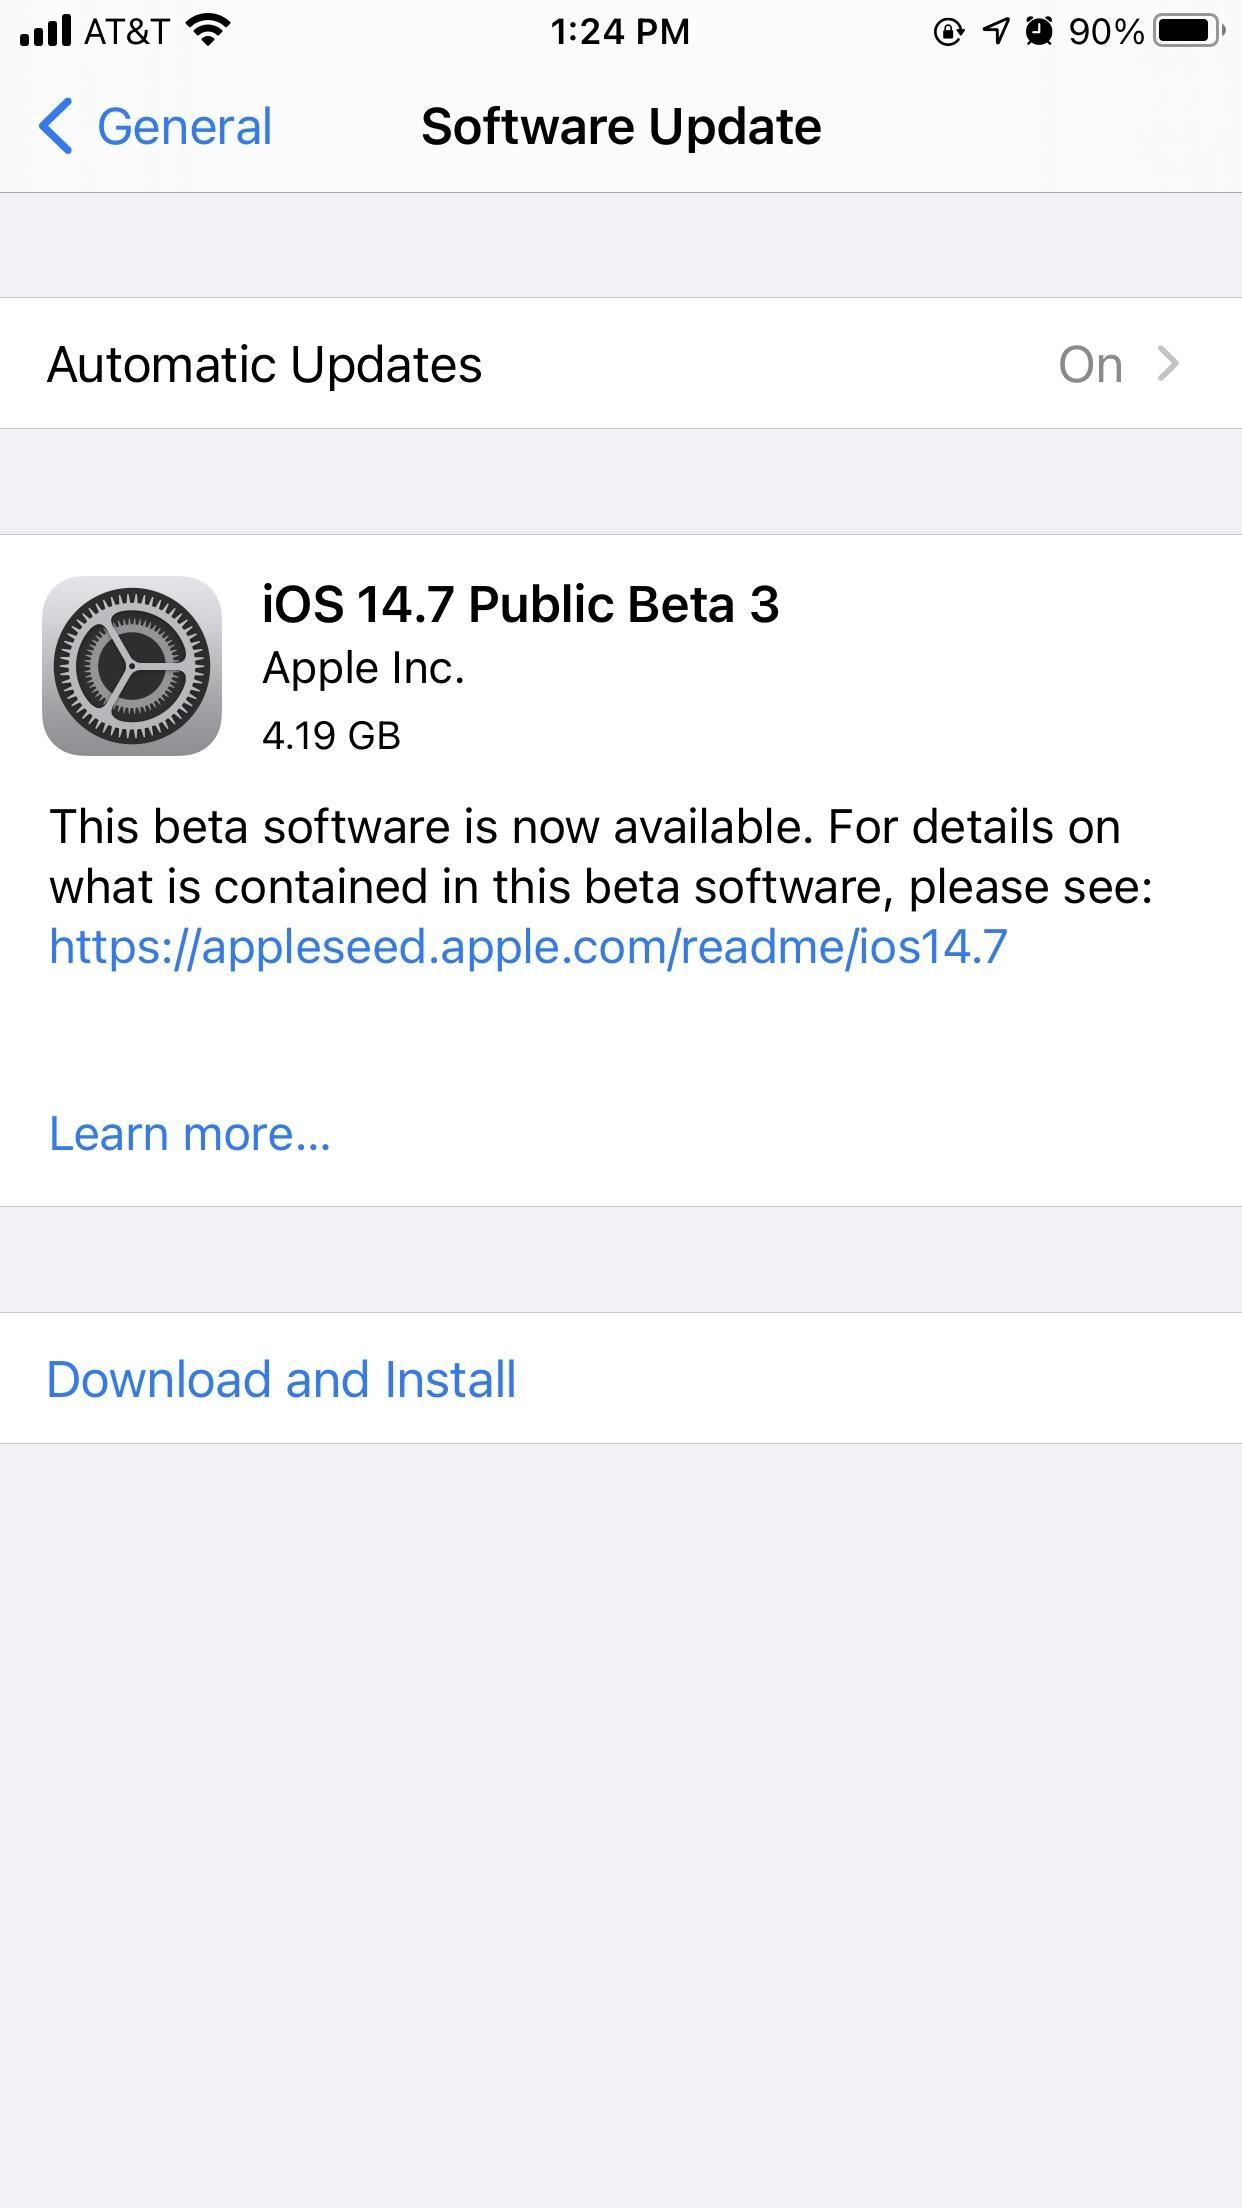 Apple Releases iOS 14.7 Beta 3 for iPhone